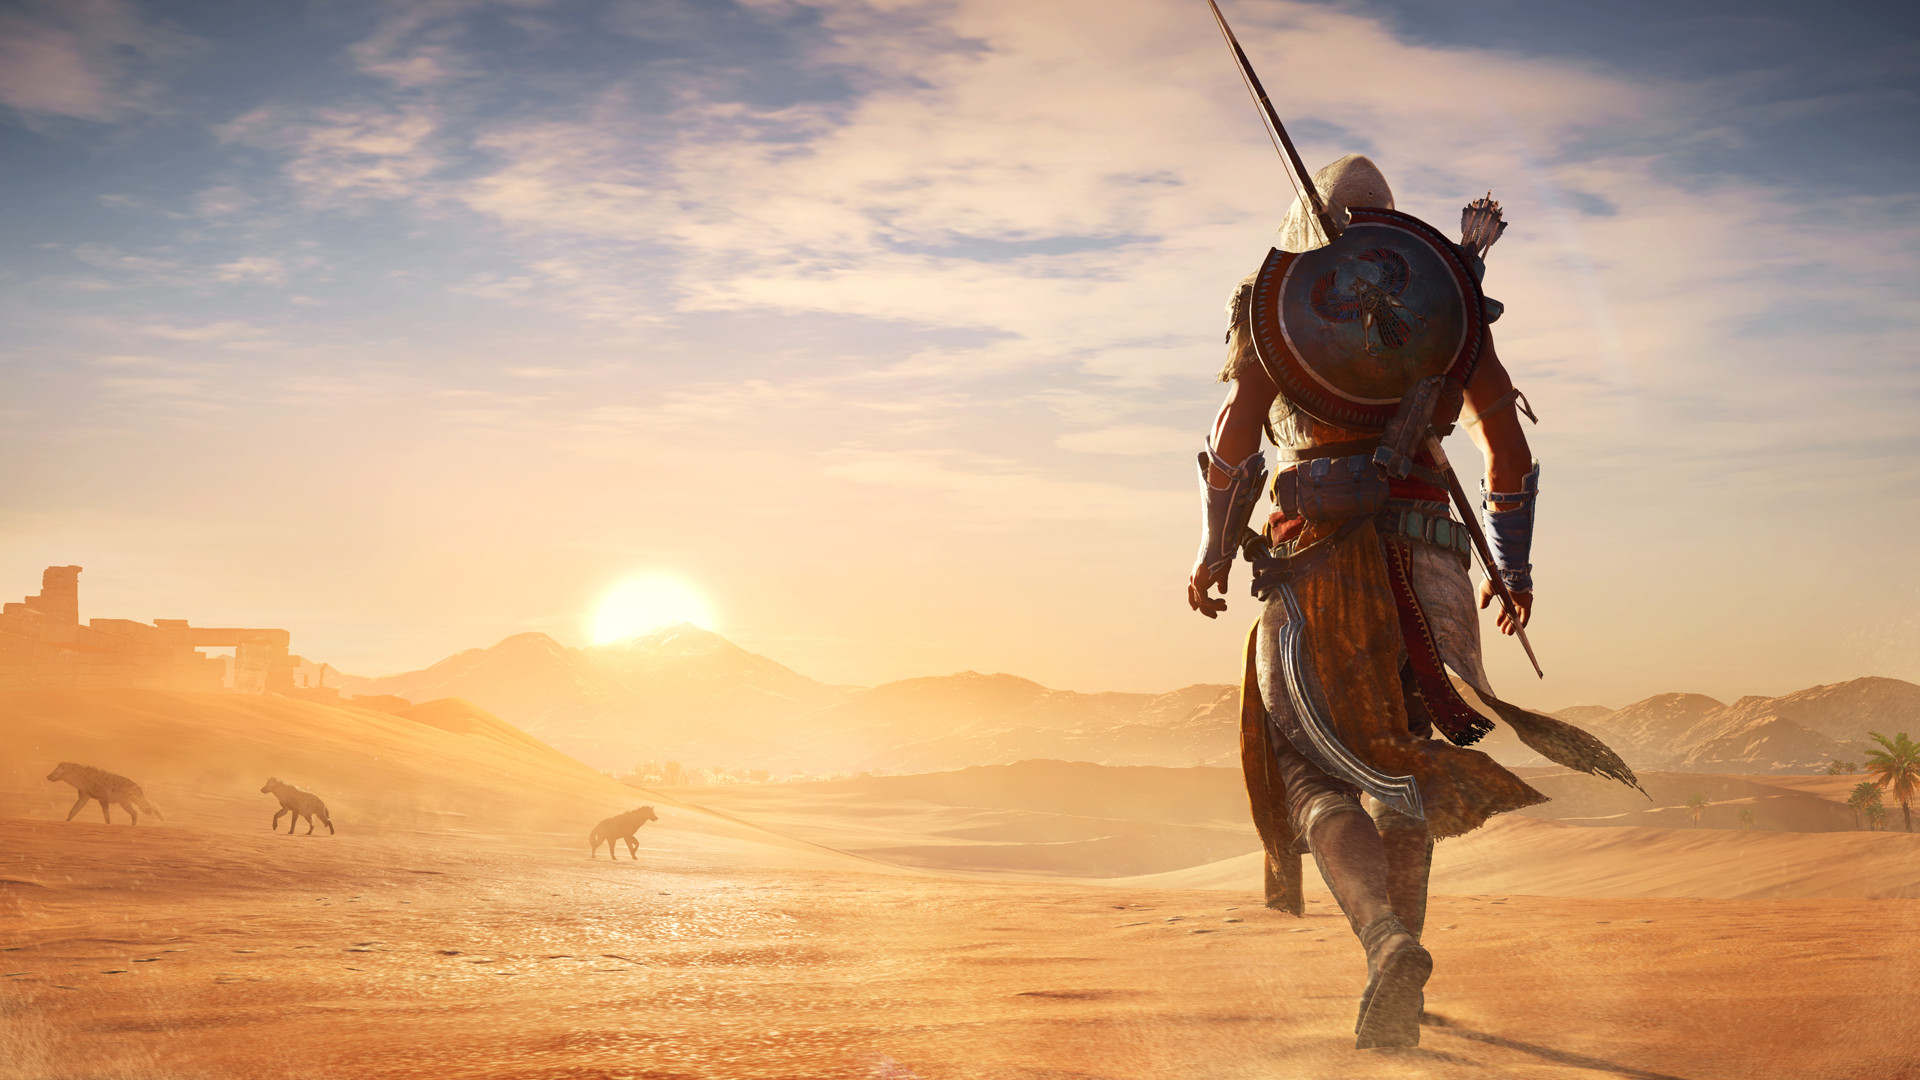 110+ PC games on sale in big Ubisoft publisher sale